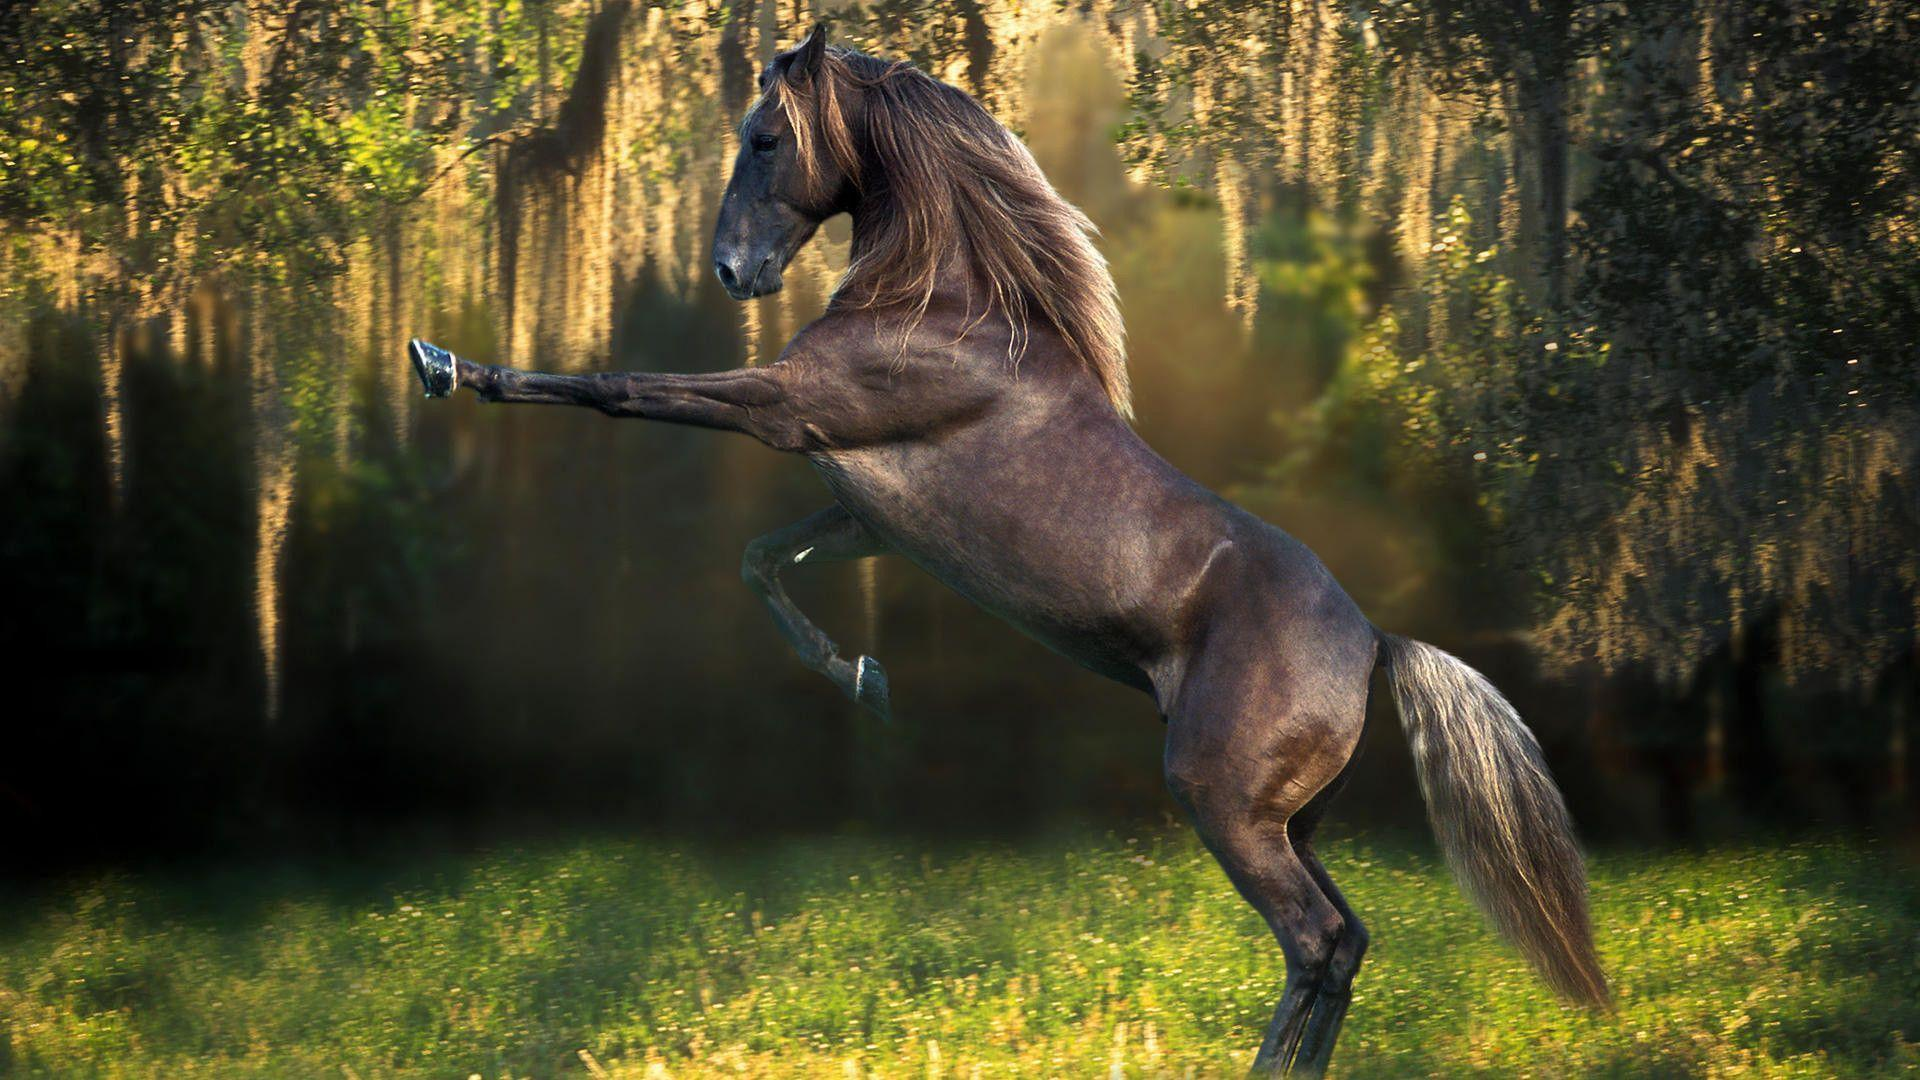 Breathtaking Funny Horse Wallpapers 1920x1080PX Wallpaper